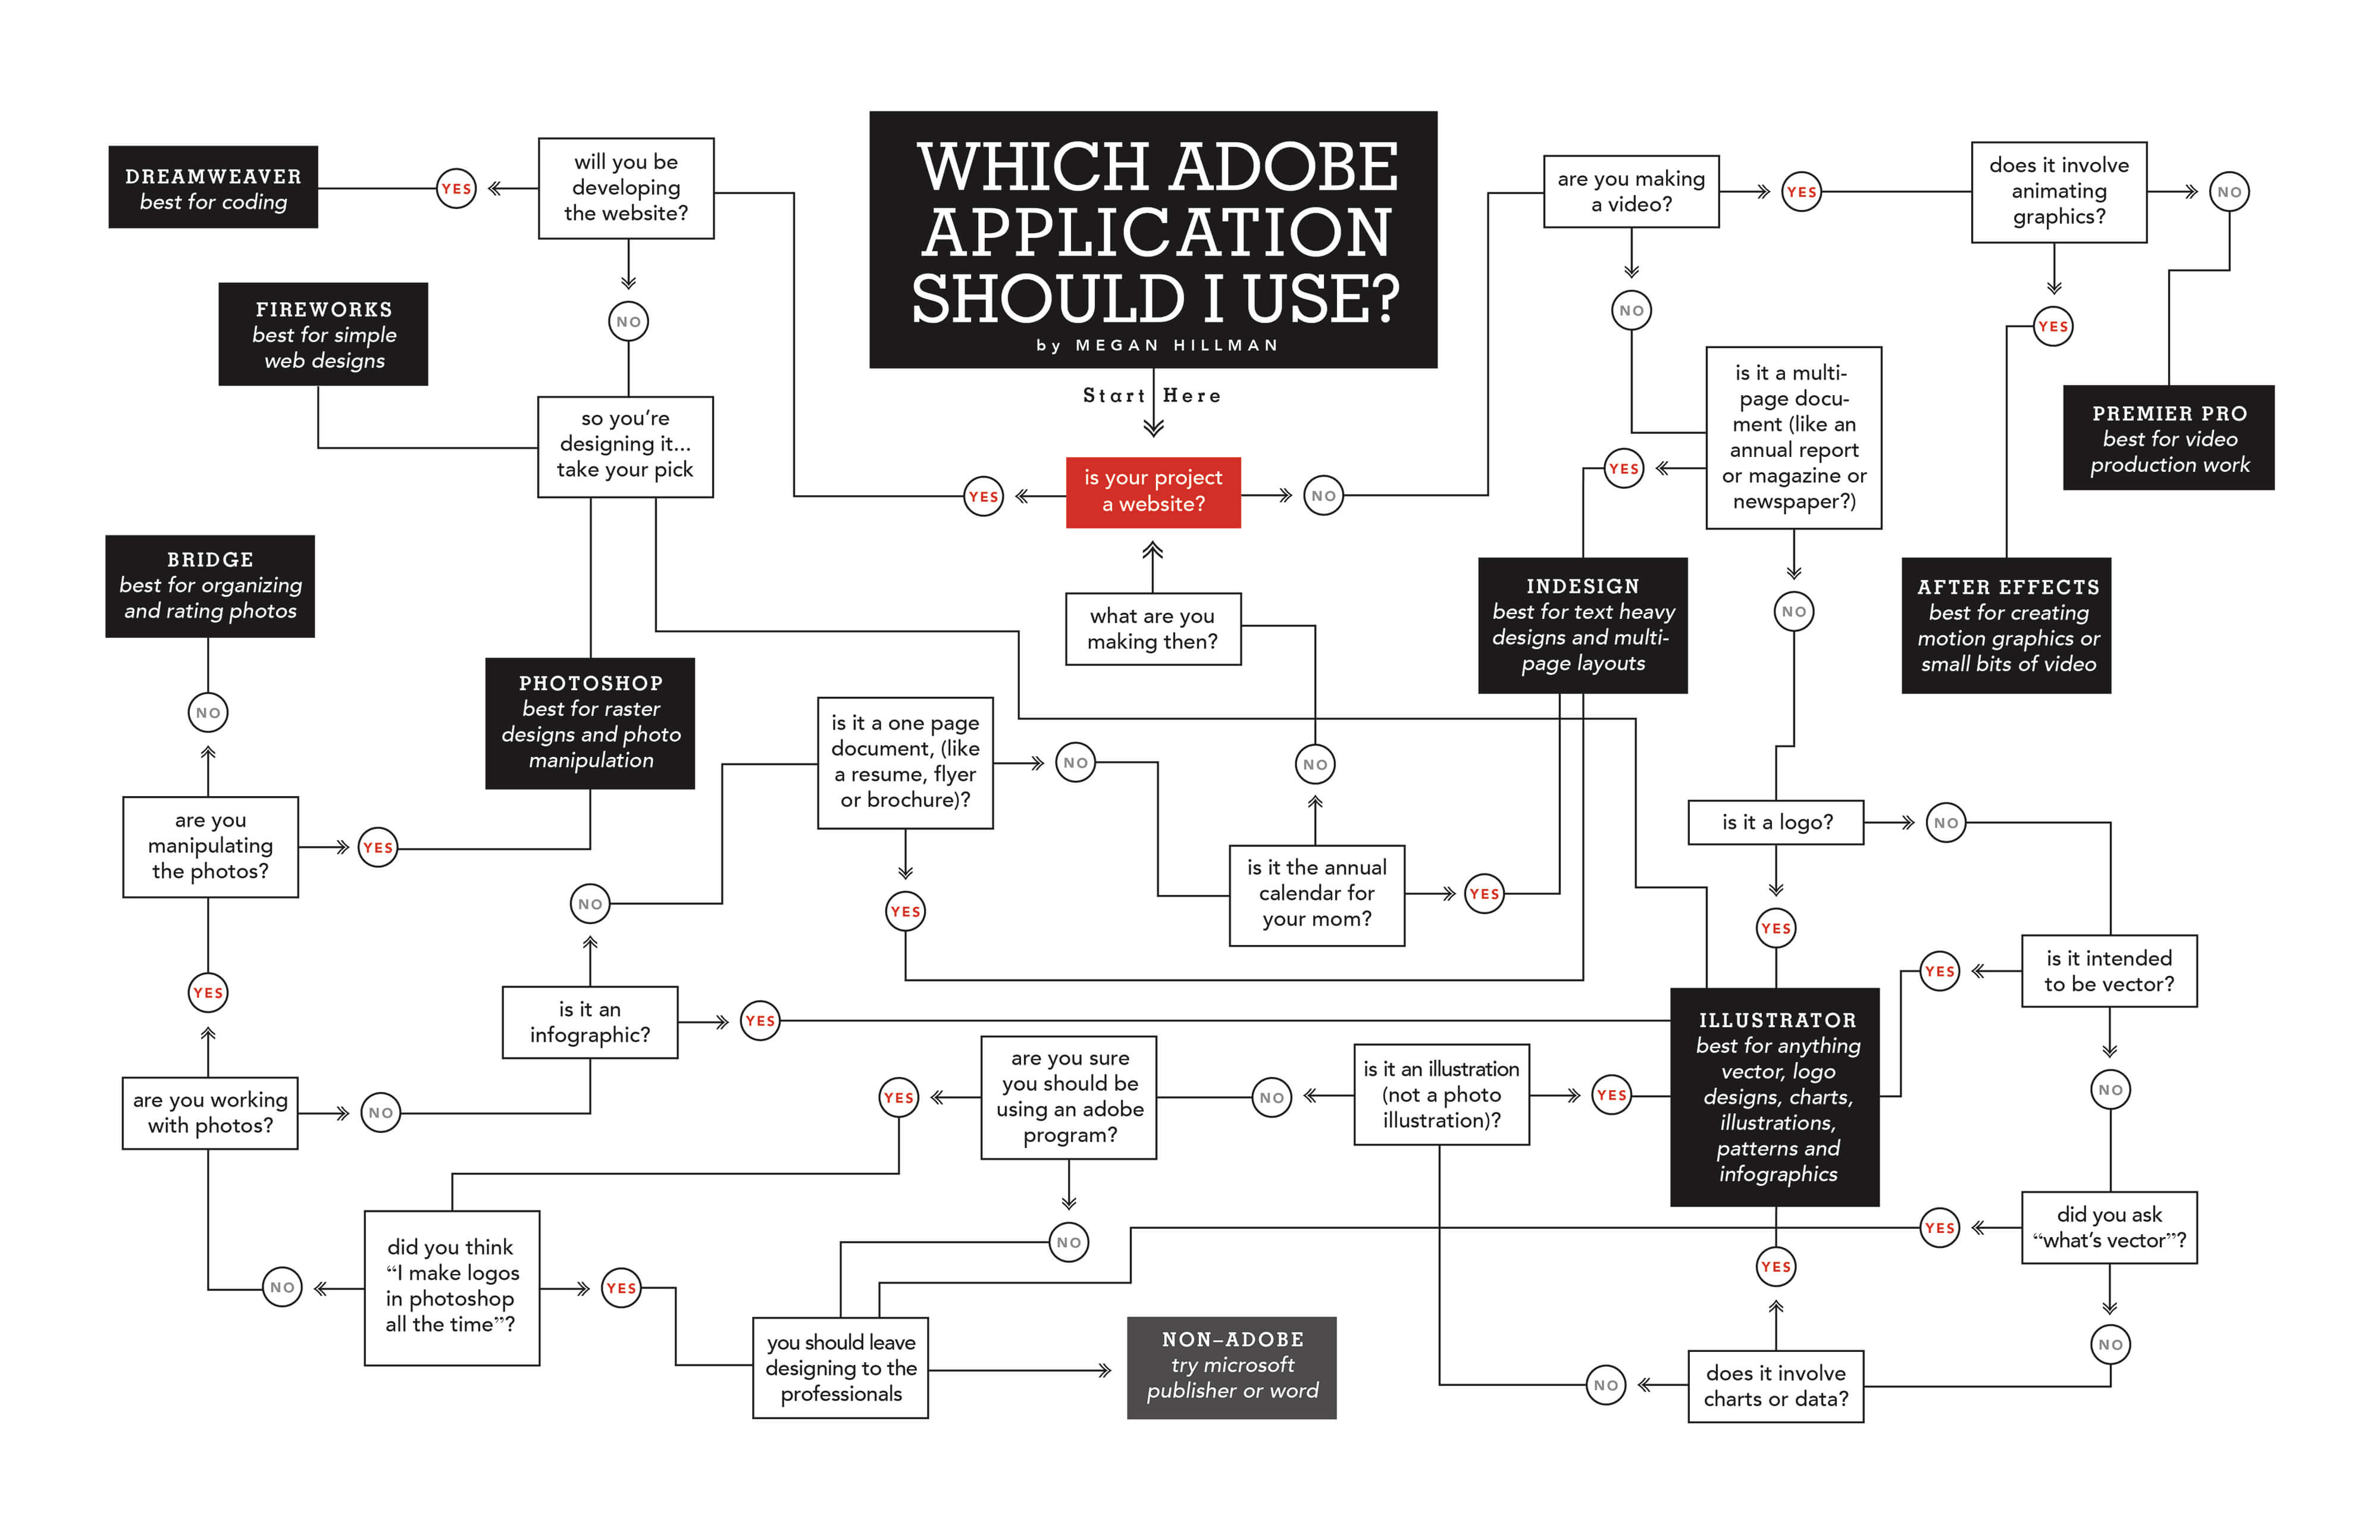 Which Adobe Application Should I Use? by Megan Hillman